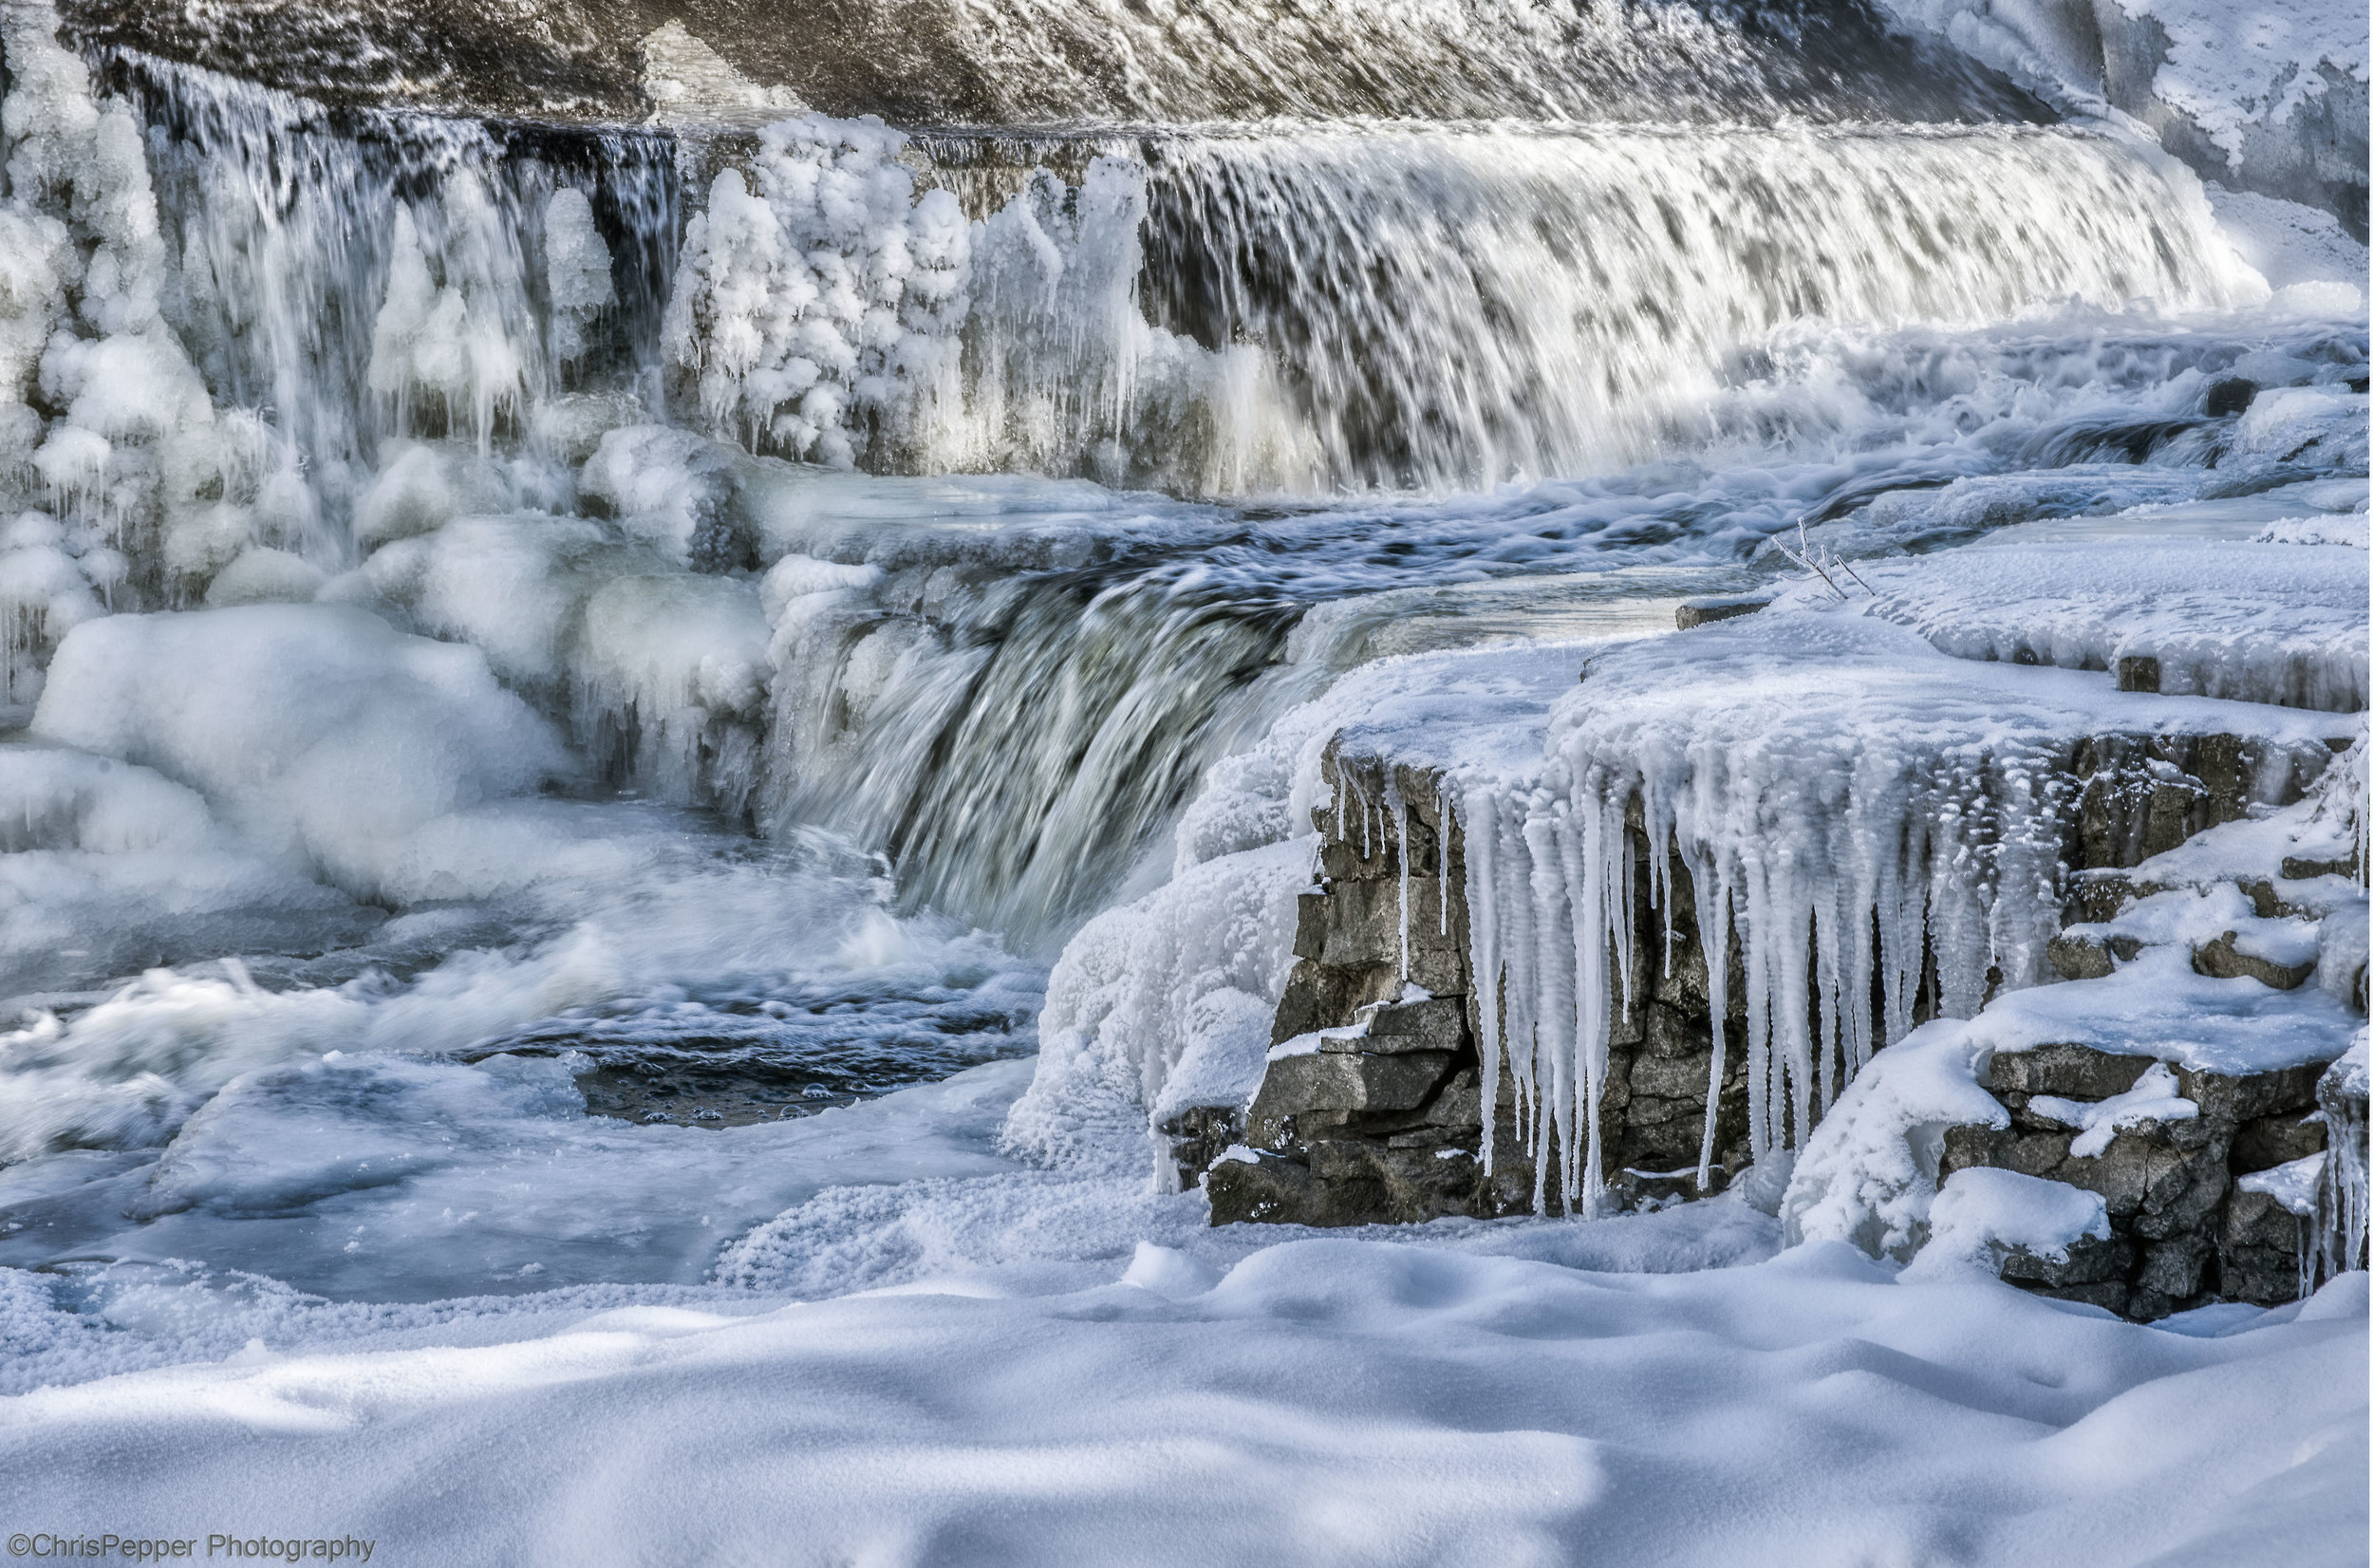 Ontario in Winter - Chris Pepper Photography